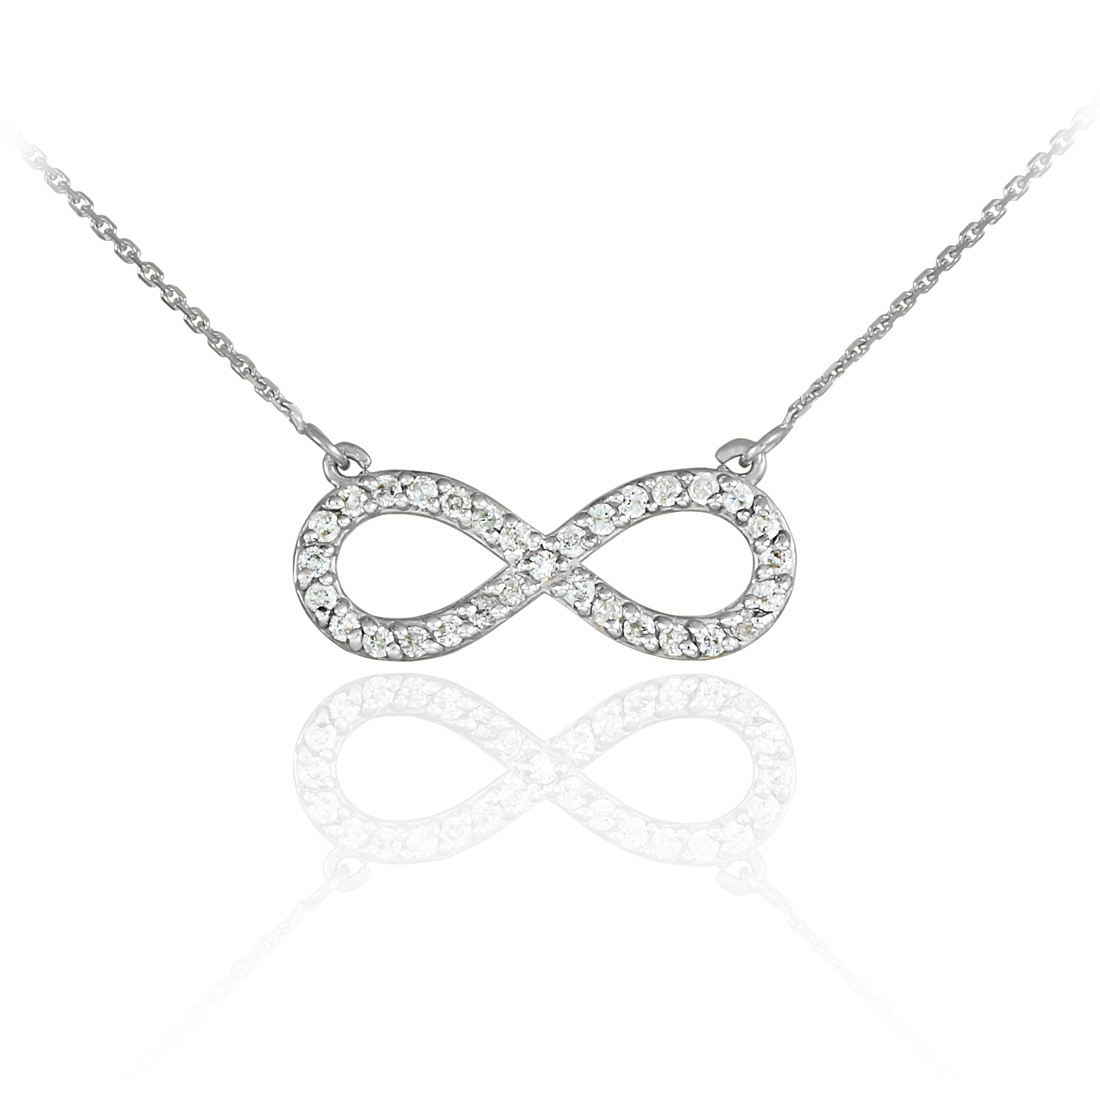 infinity necklace white gold. diamond infinity necklaces necklace white gold